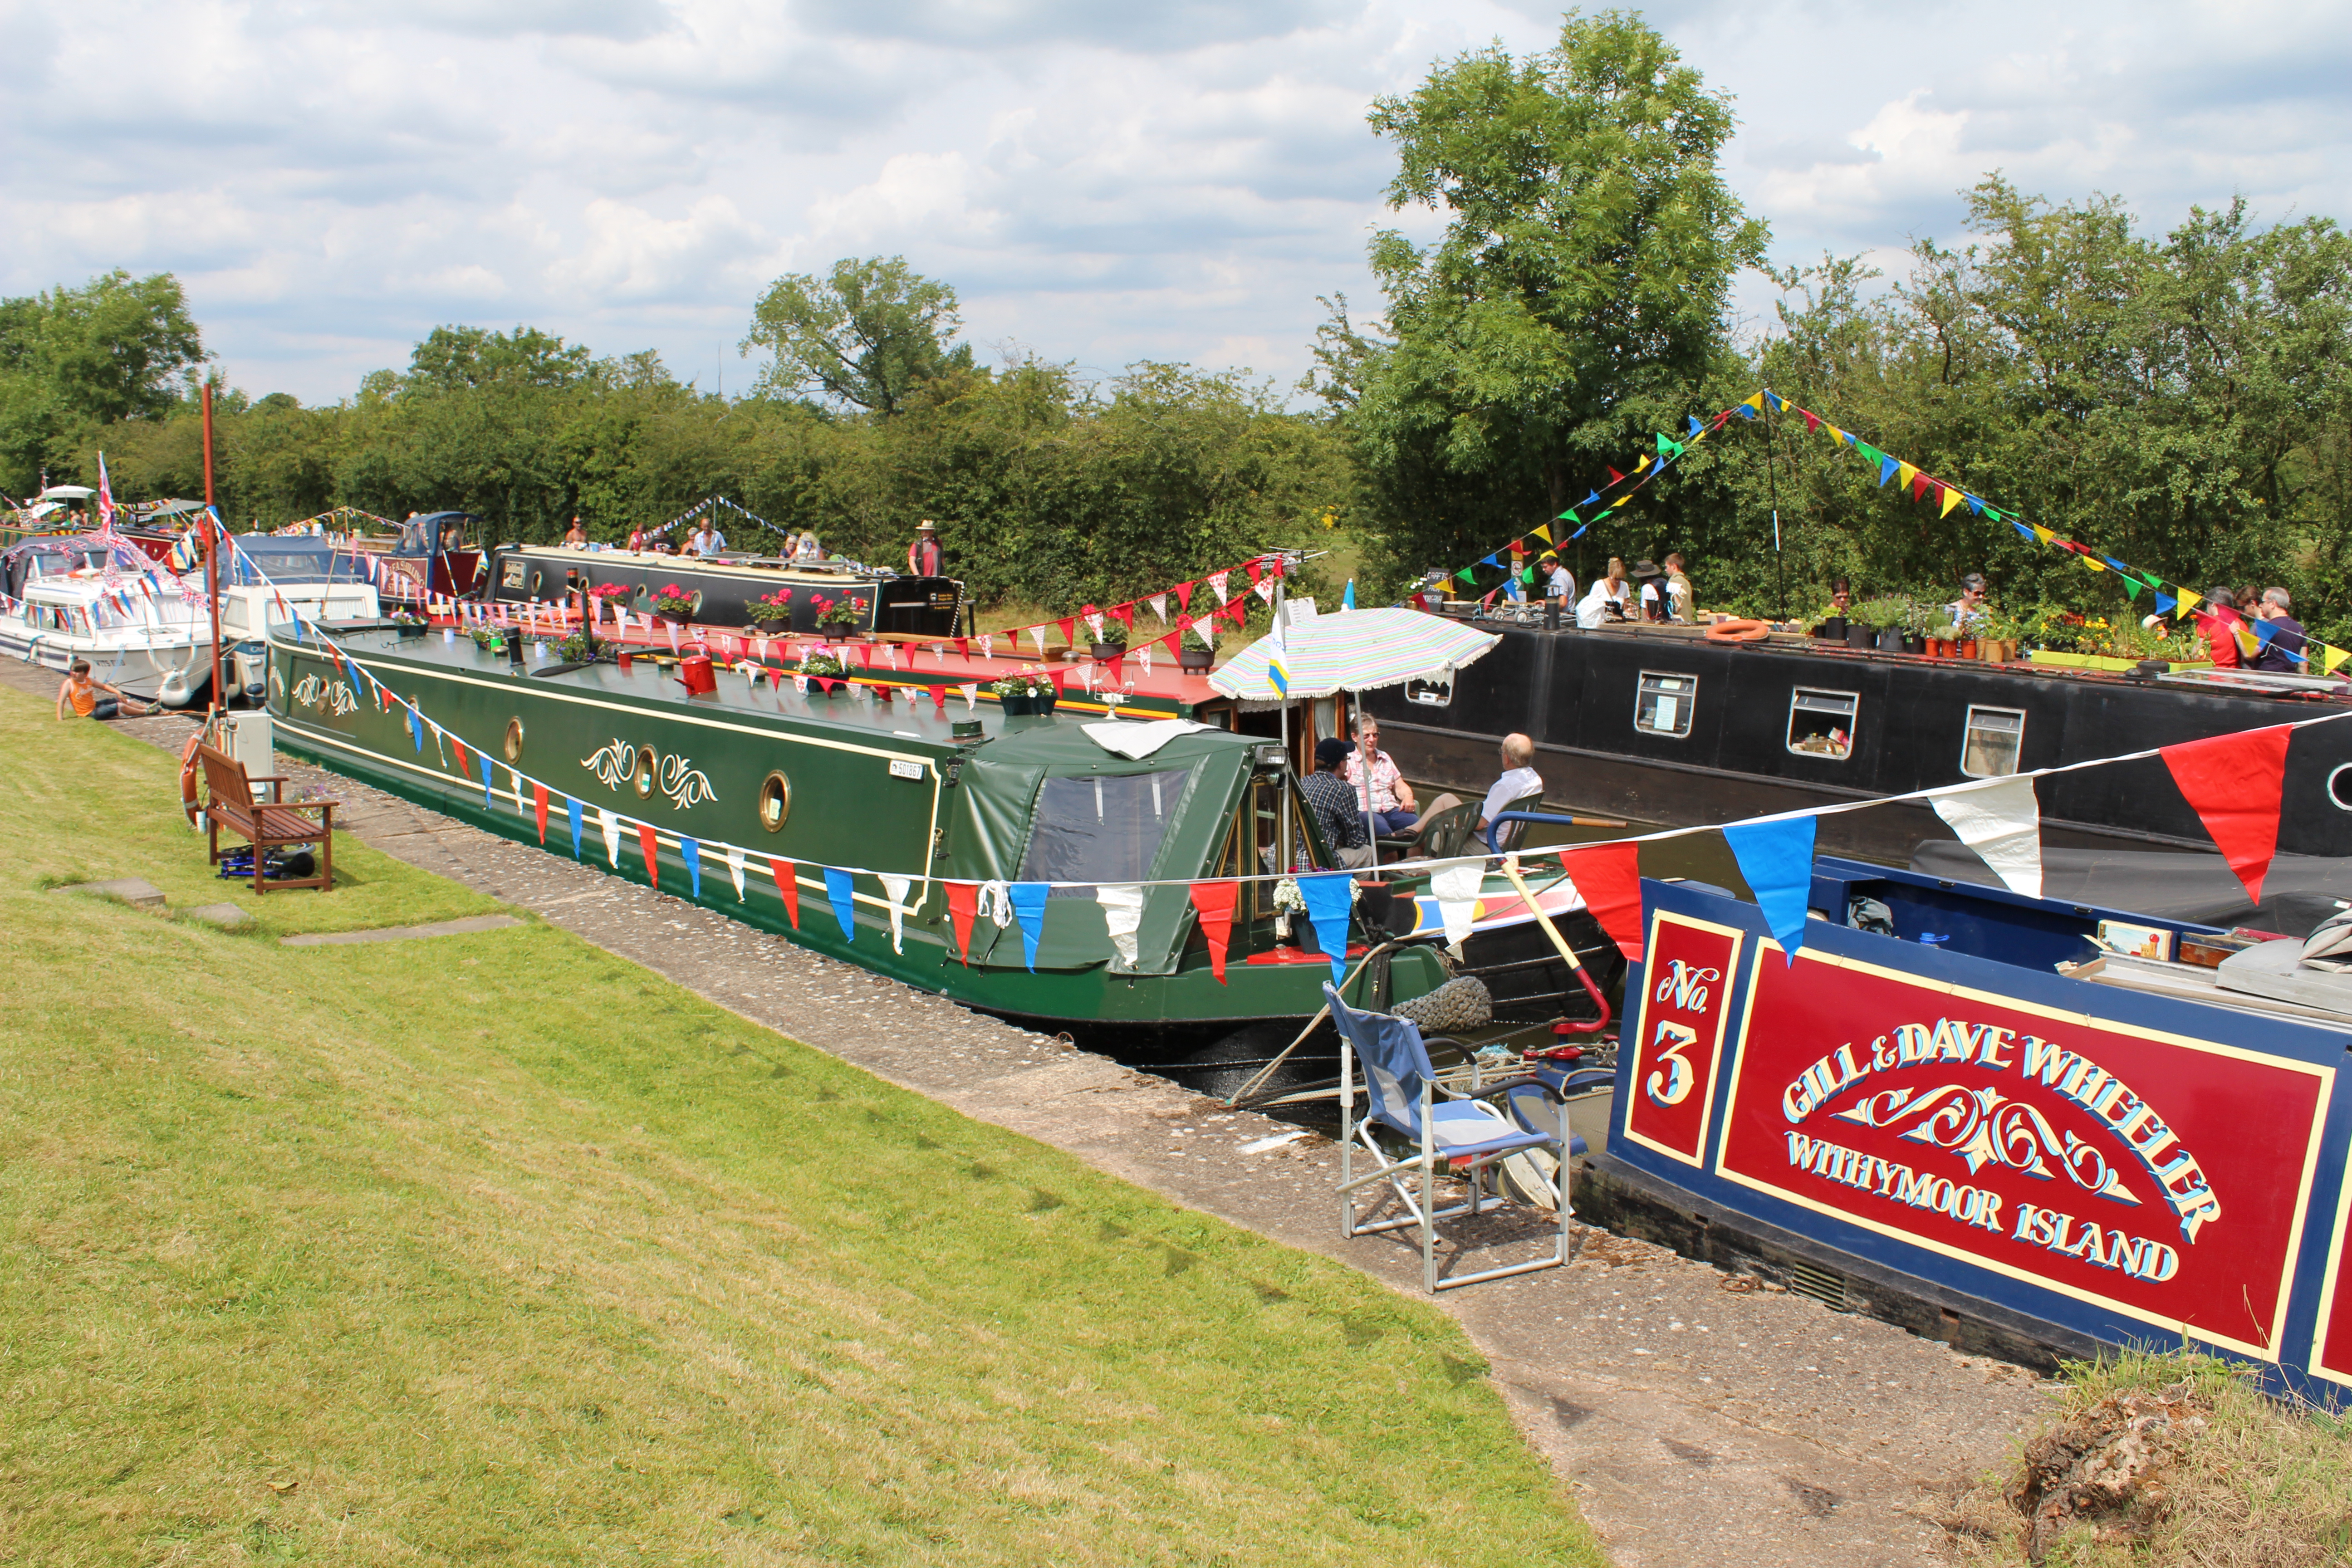 Photograph: Colourful scene at the south end of our moorings during the BBCC Rally 2014